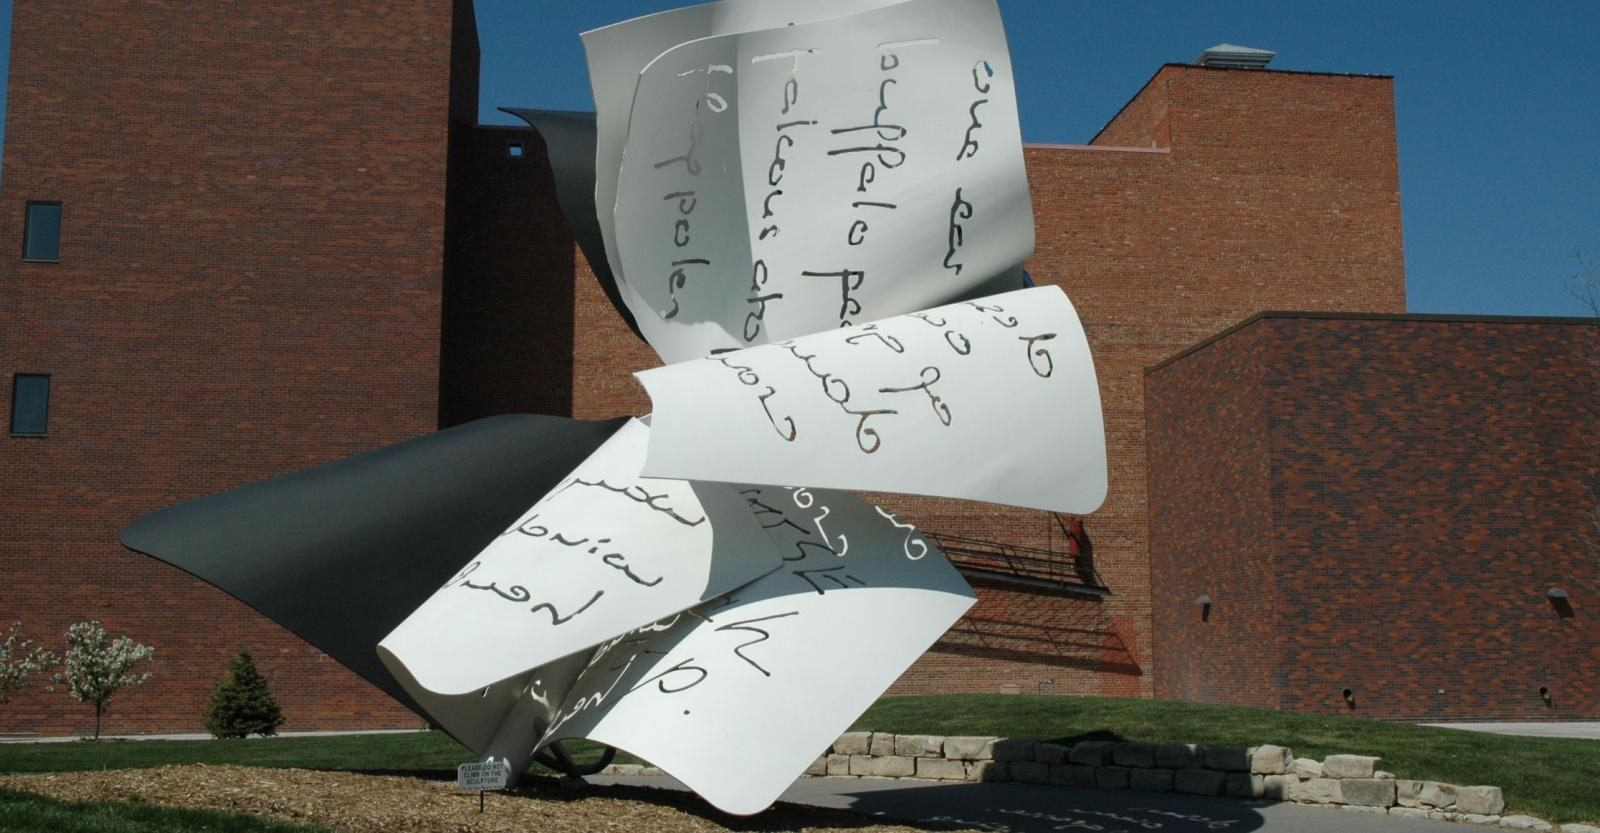 Torn Notebook Sculpture on City Campus